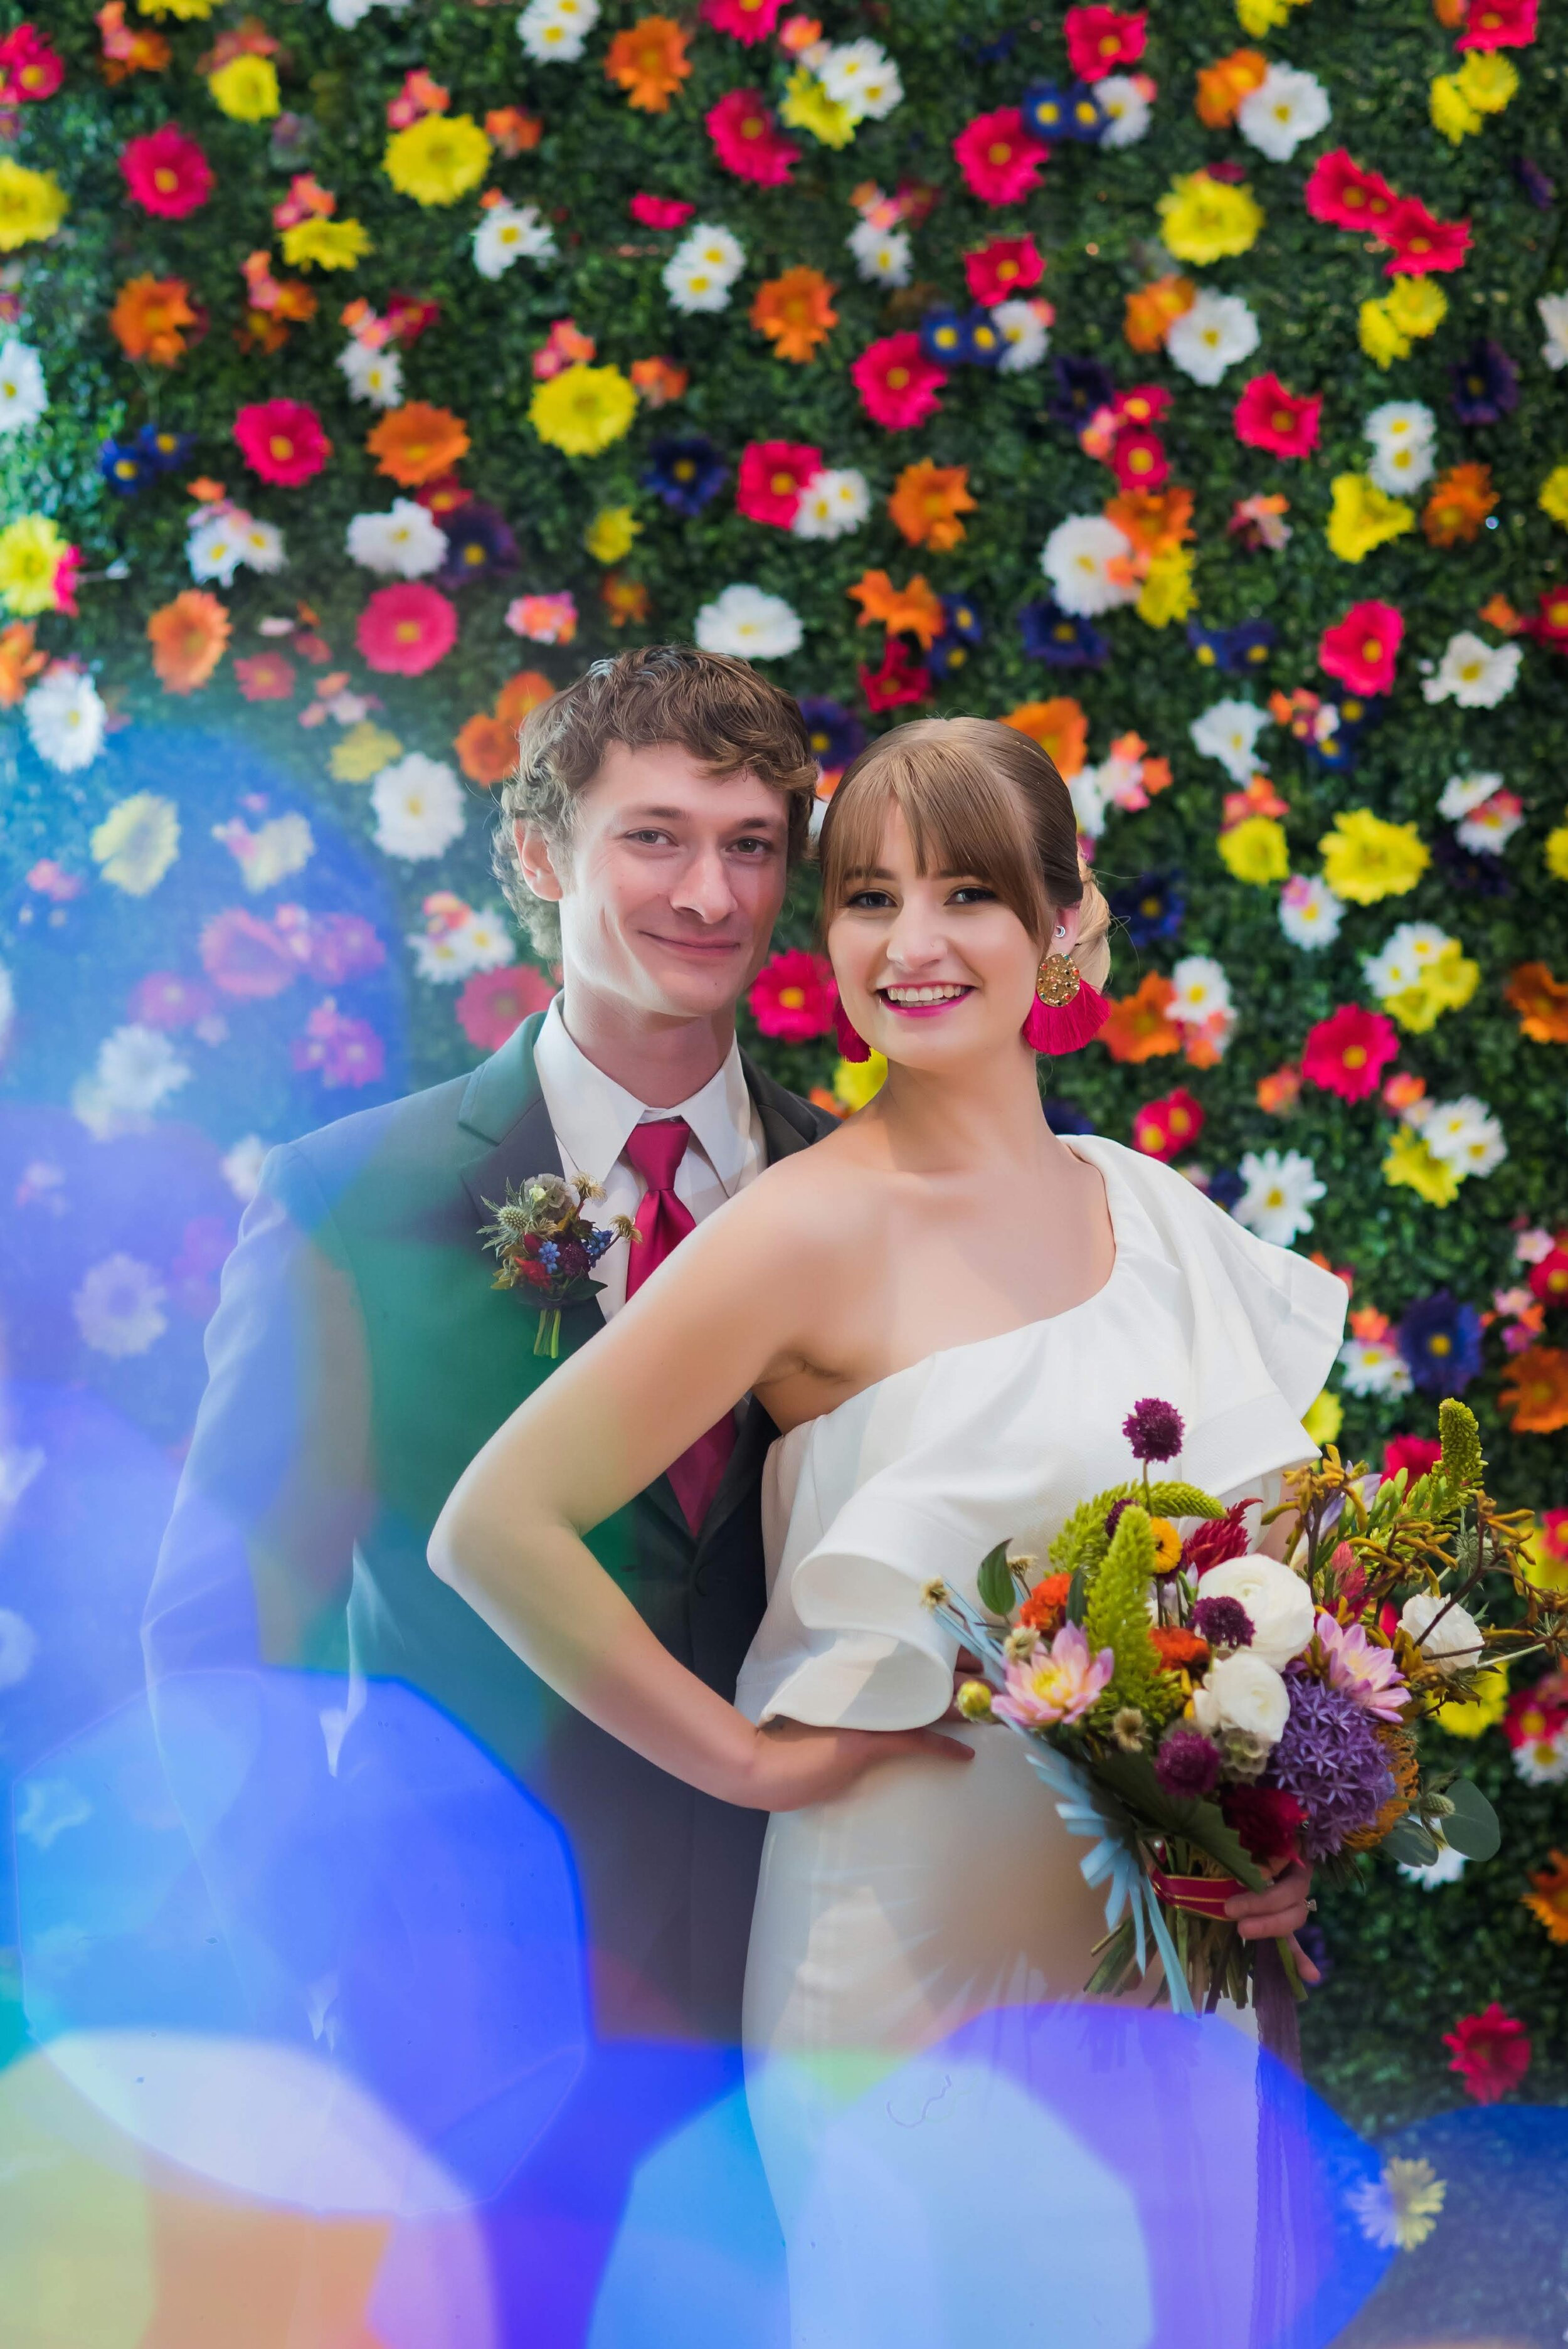 Bride and groom with a floral photo backdrop at their wedding at Charles Allis Art Museum in Milwaukee, Wisconsin- Photo by Reminisce Studio.jpg